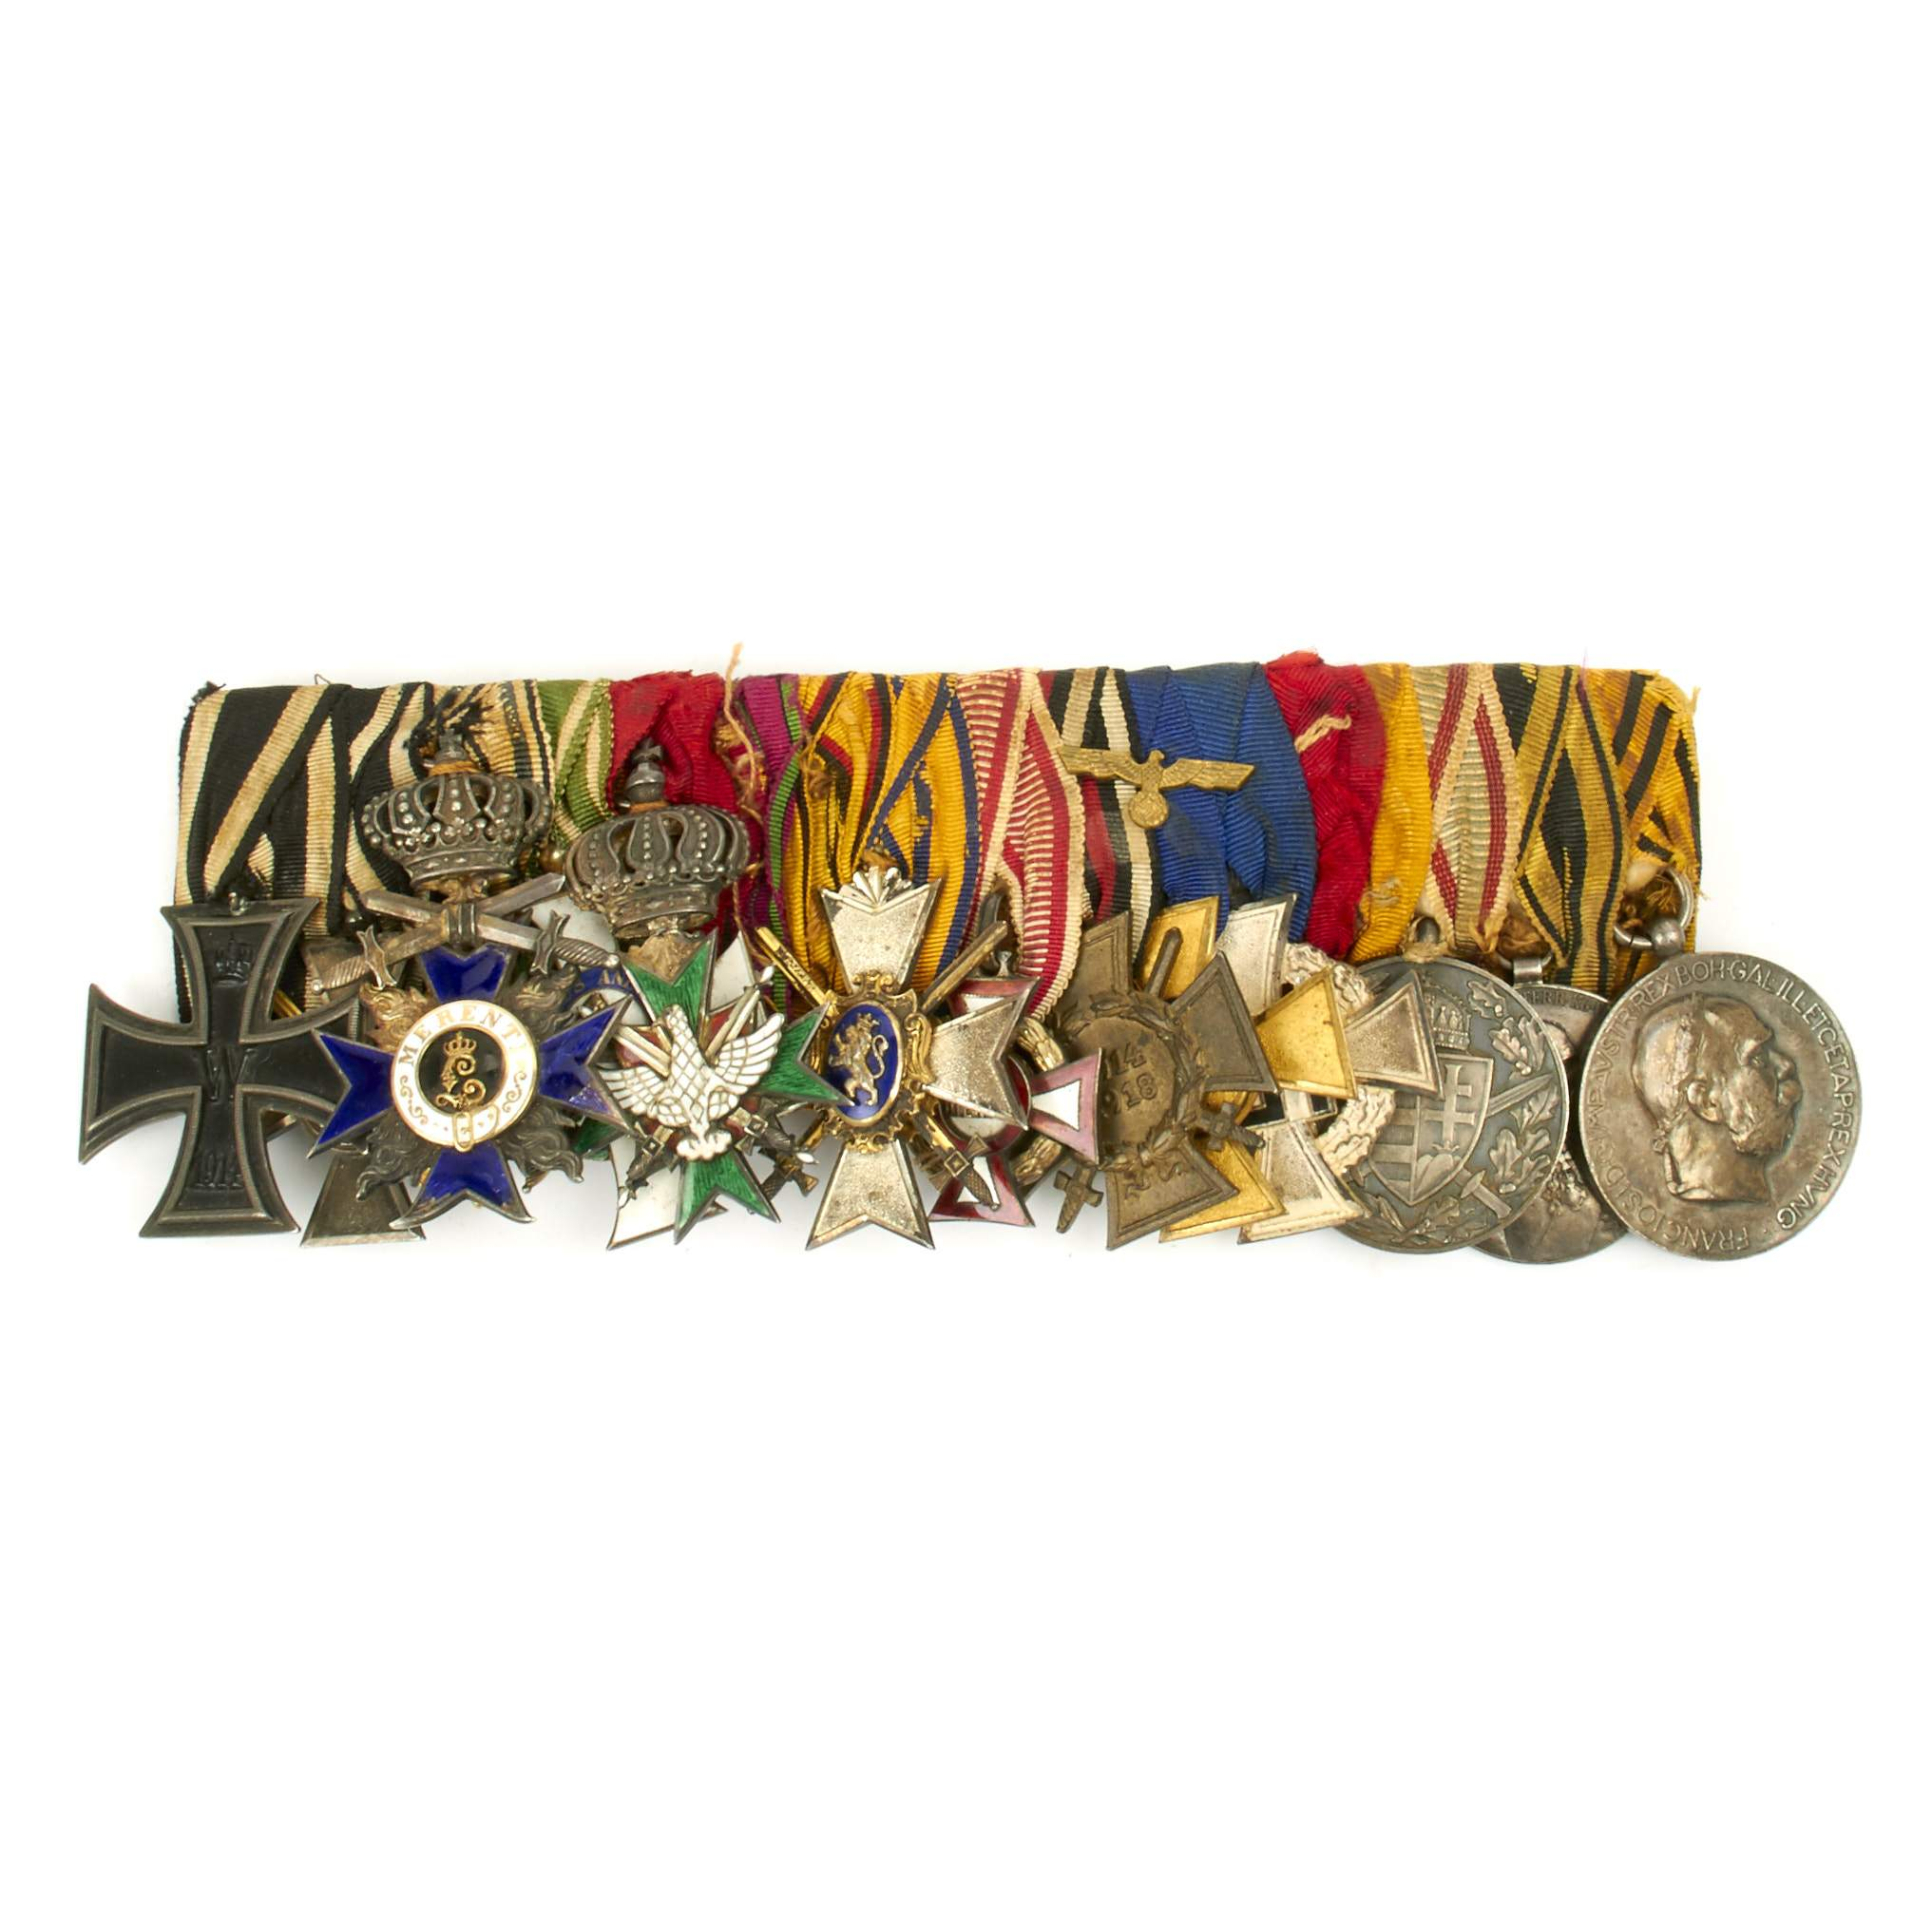 WW1 WWI Imperial German Replacement Medal Ribbon 6 in Germany Medals WWII WW2